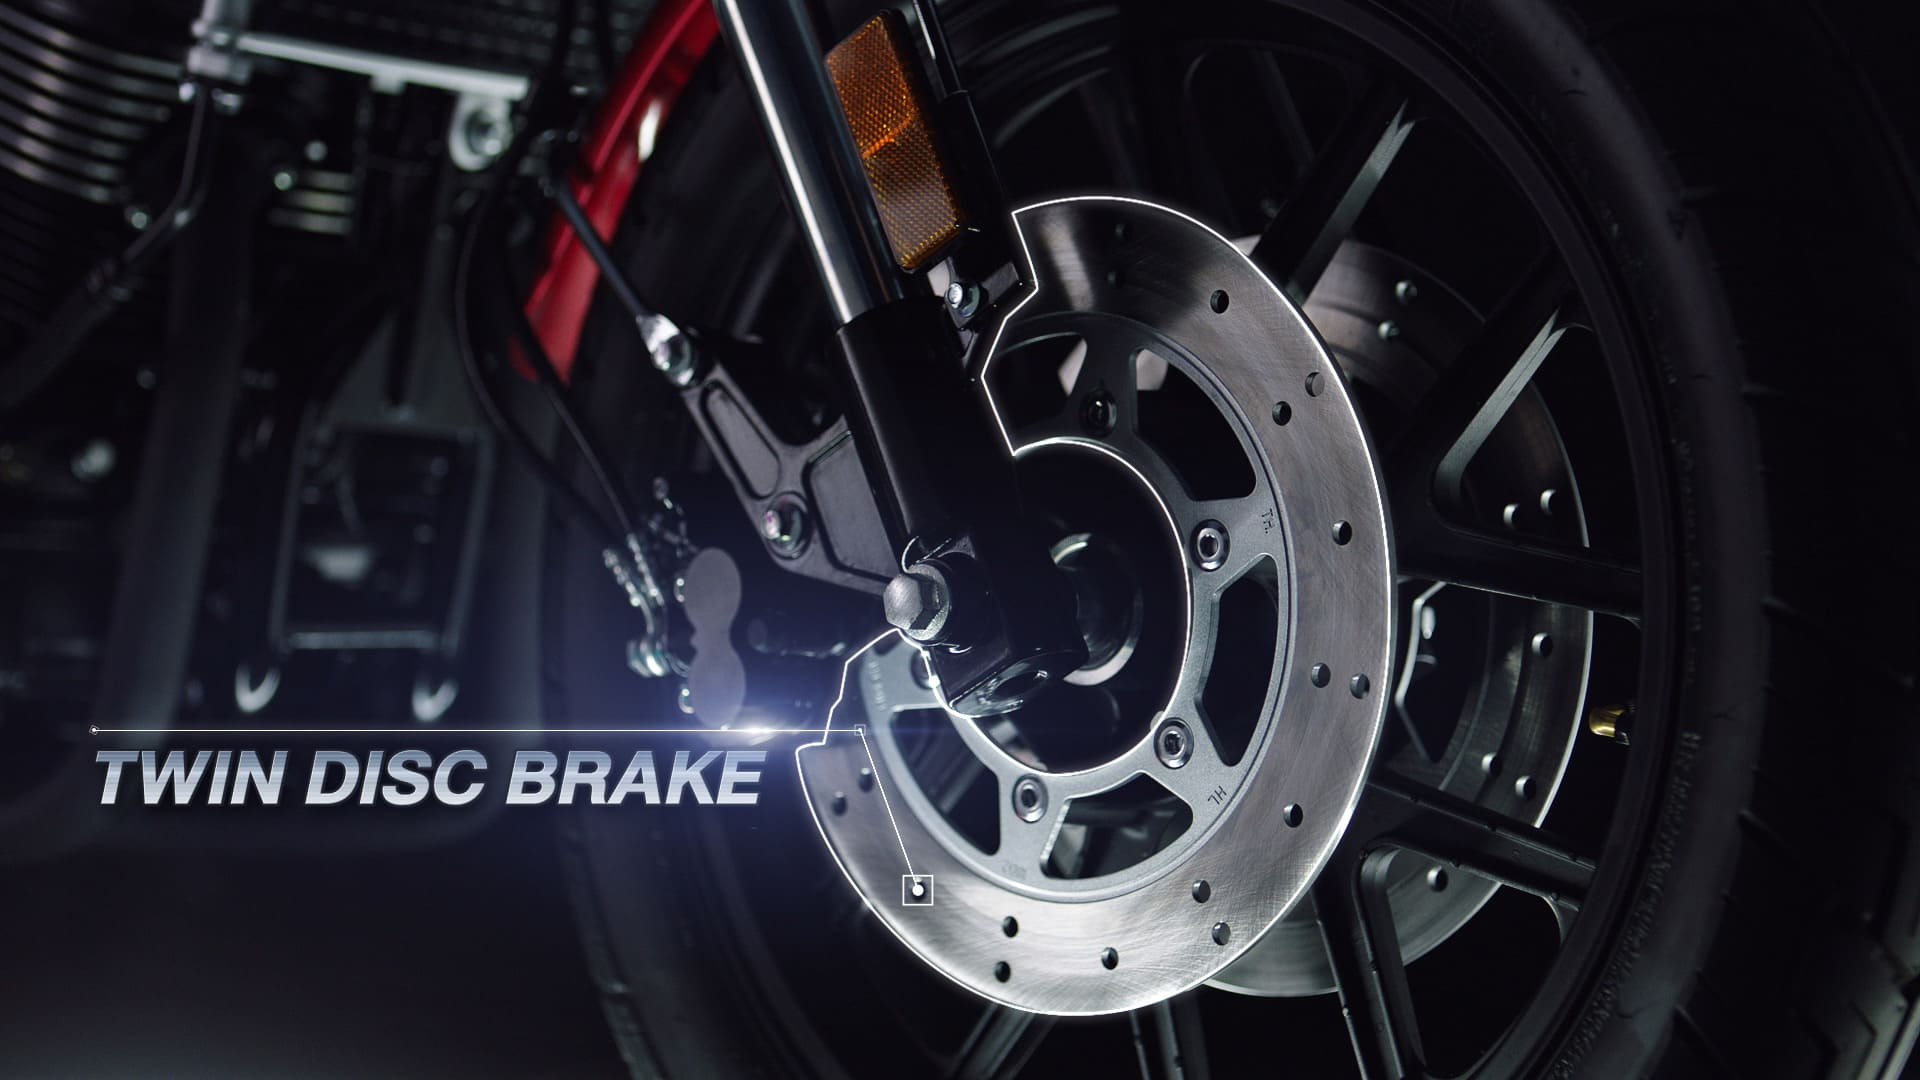 Front Twin-Disc brake